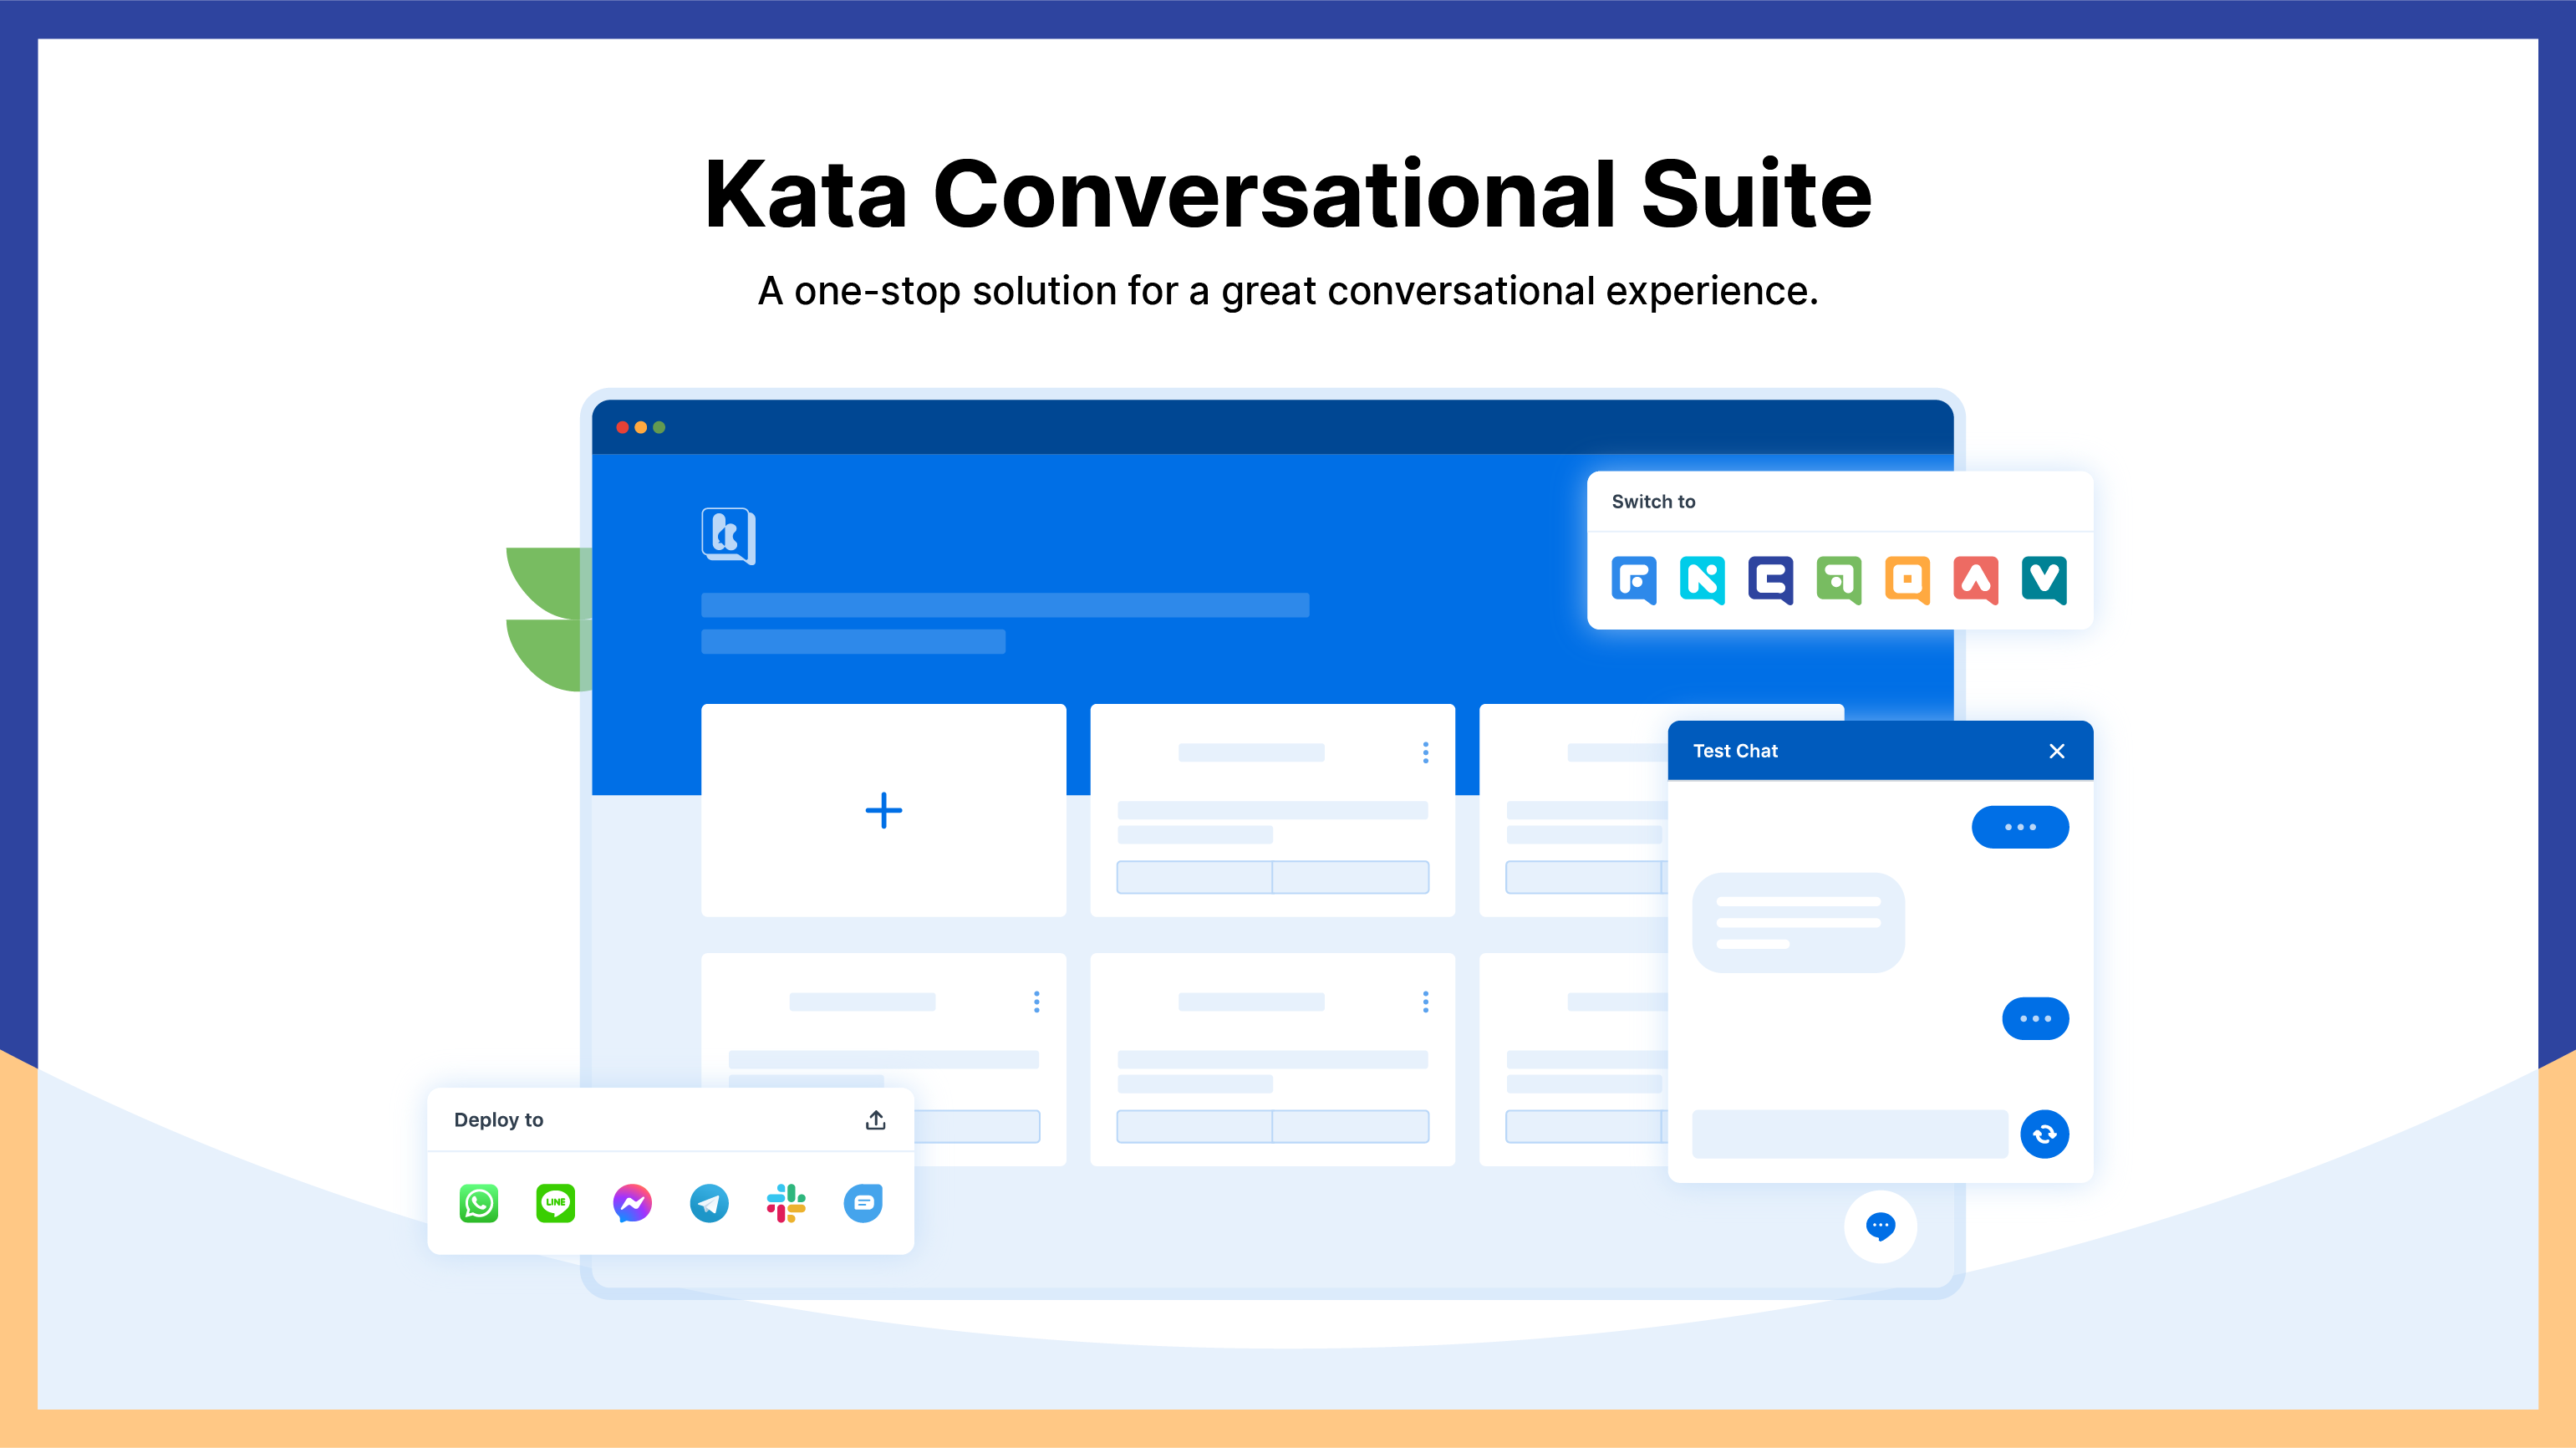 Kata Conversational Suite is Kata.ai's one-stop solution for a great conversational experience, including all you need to build a smart chatbot for your business.